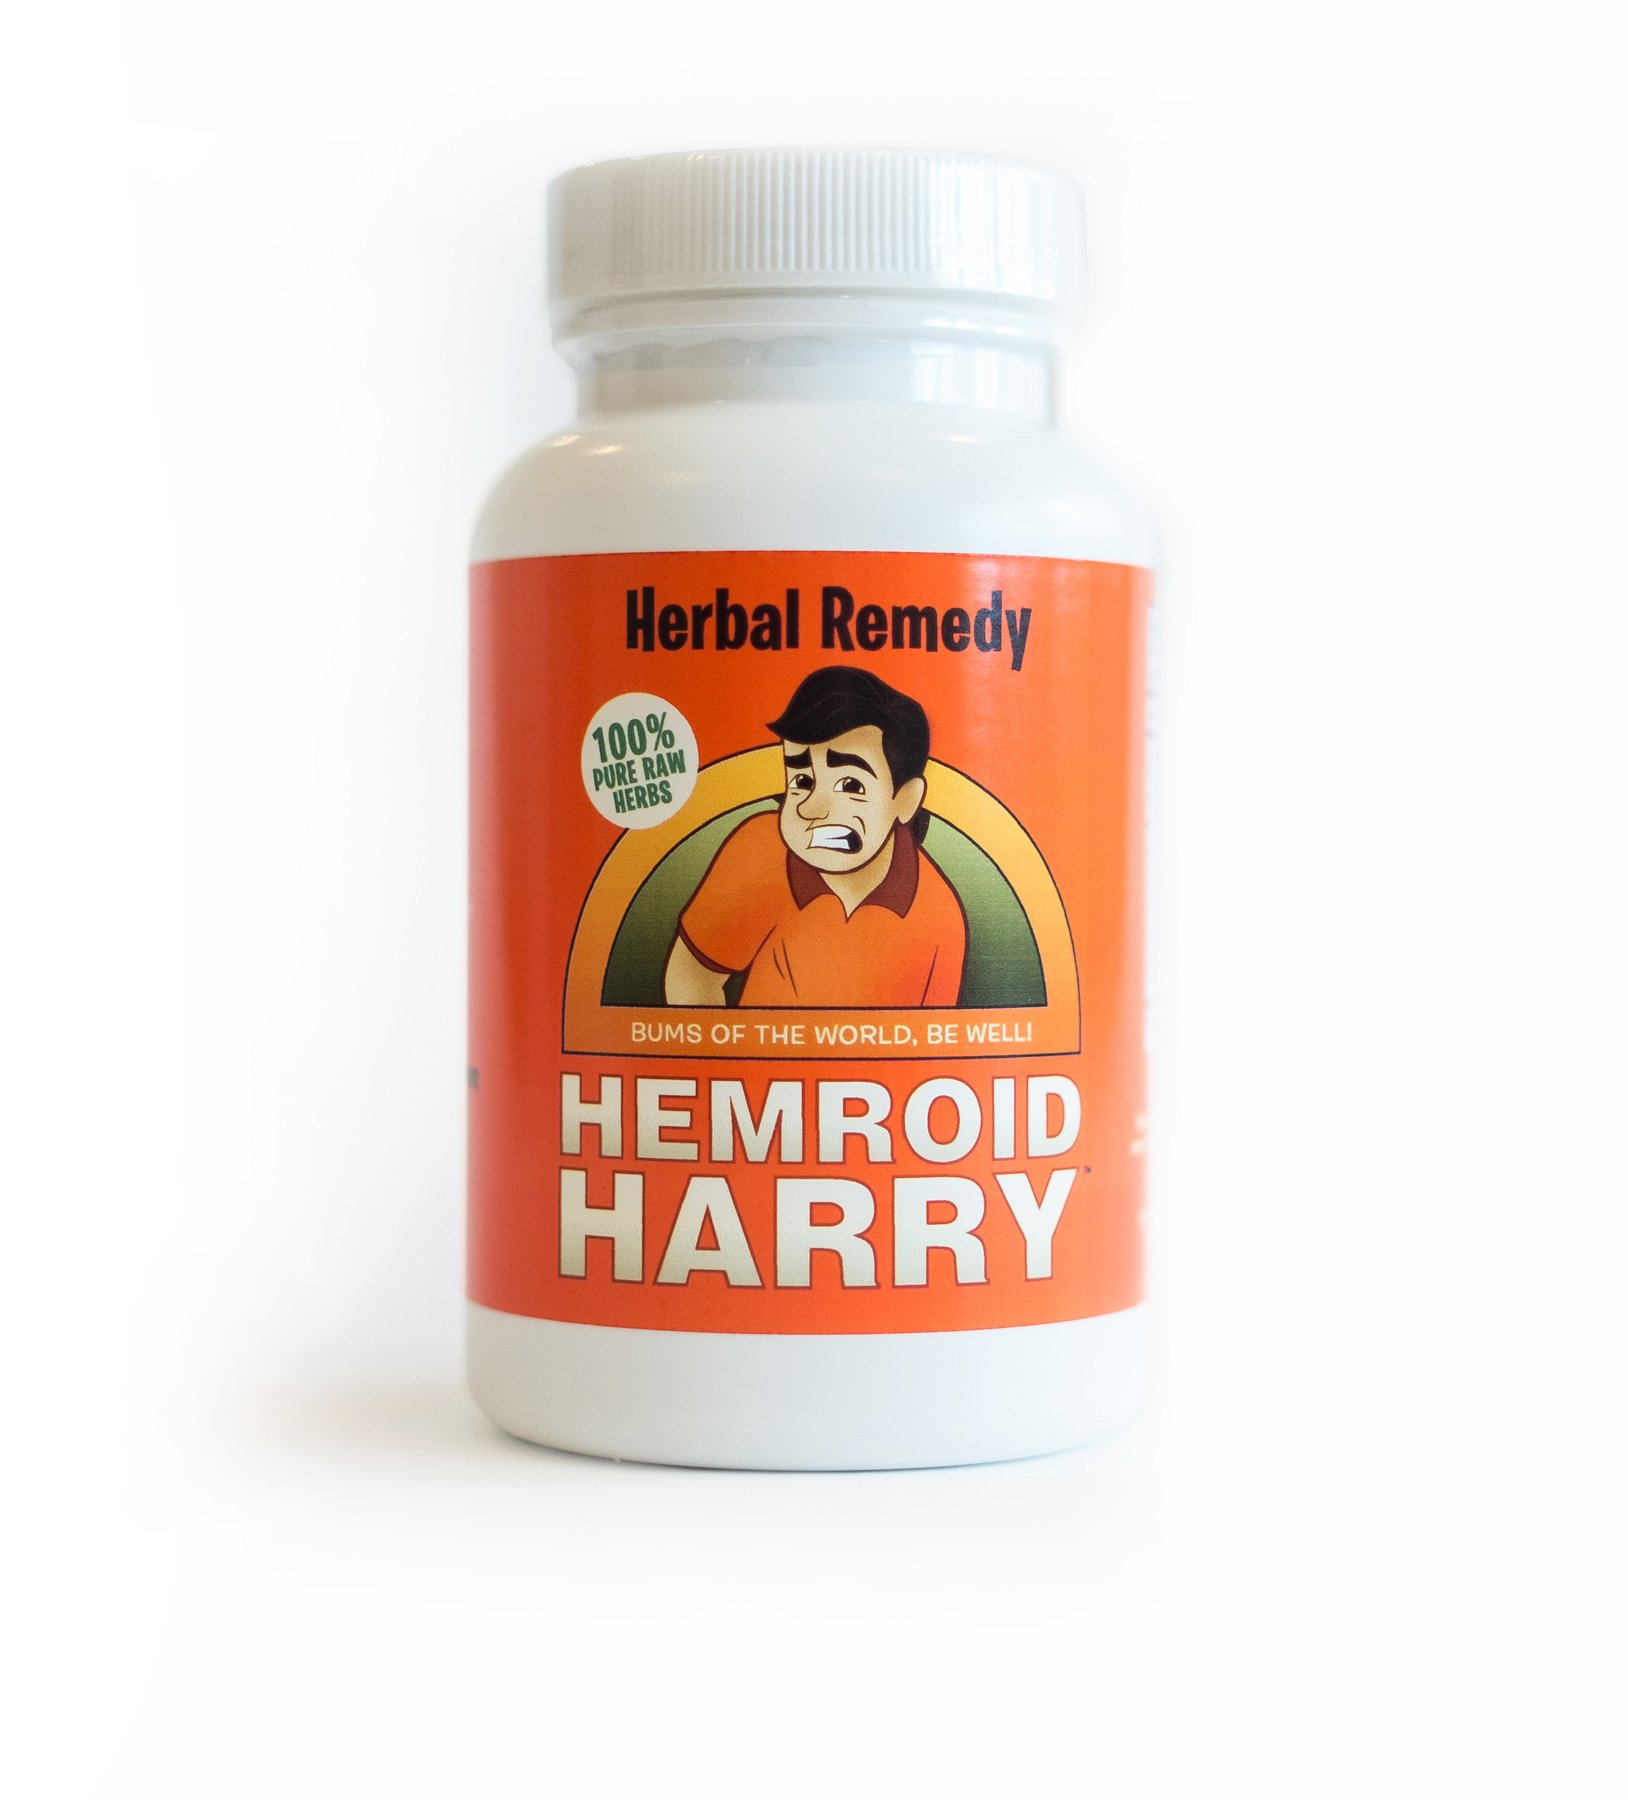 Hemroid Harry's Herbal Remedy, 45 Day (360 Count) - Natural Hemorrhoid Treatment, Itch Pain Relief, Pills, Medicine, Medication, Care